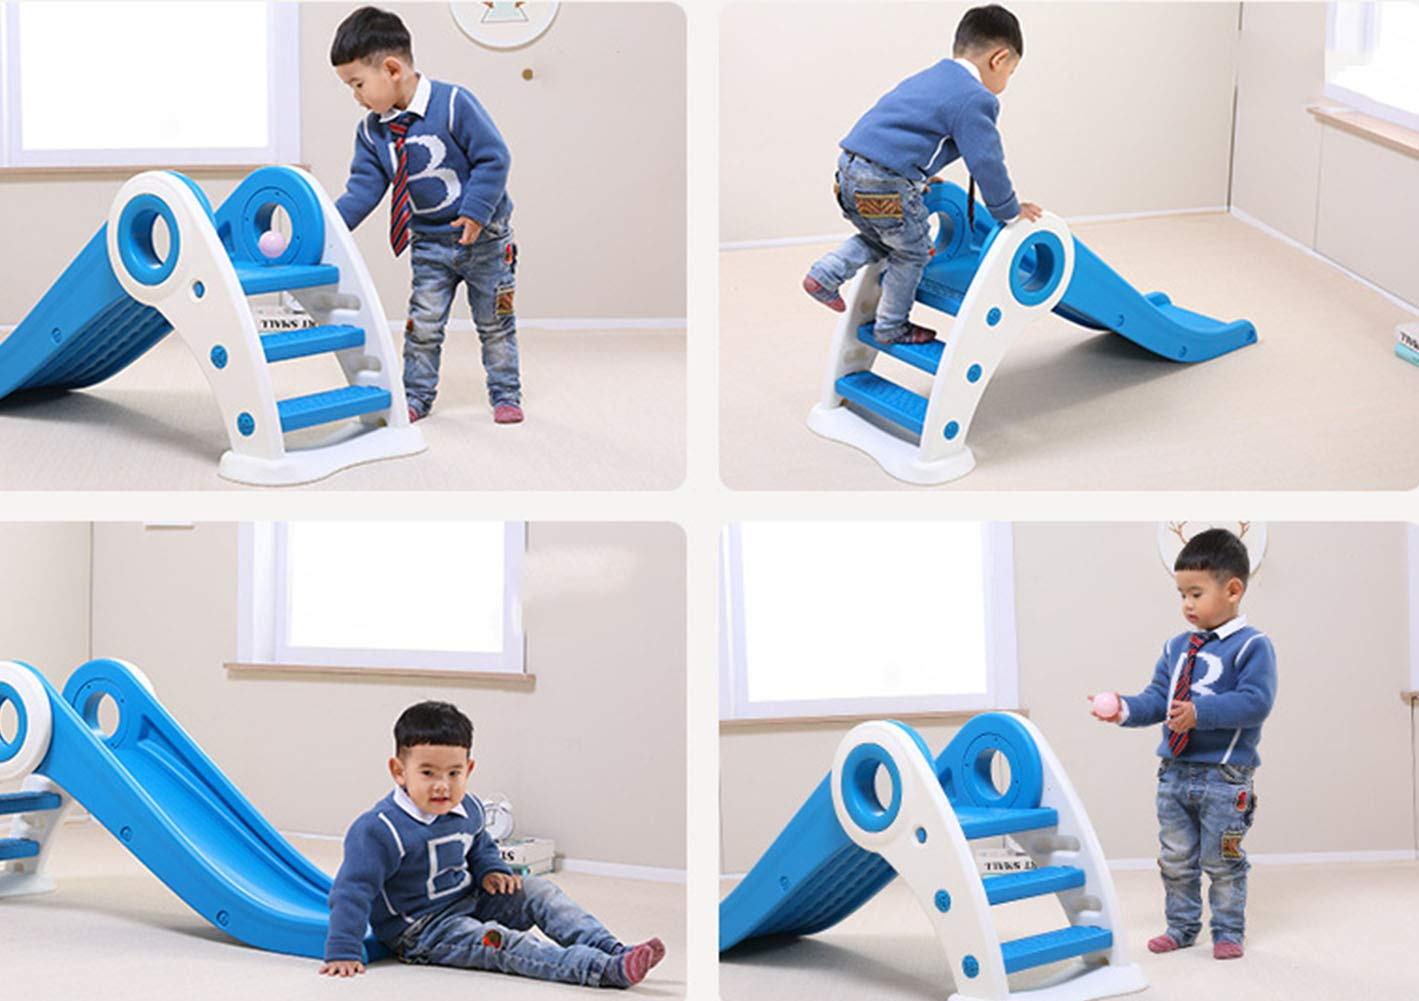 Thole Slide Climber fold Indoor Outdoor Backyard Use First Playground Plastic Play Boys Girls,Blue by Thole (Image #2)